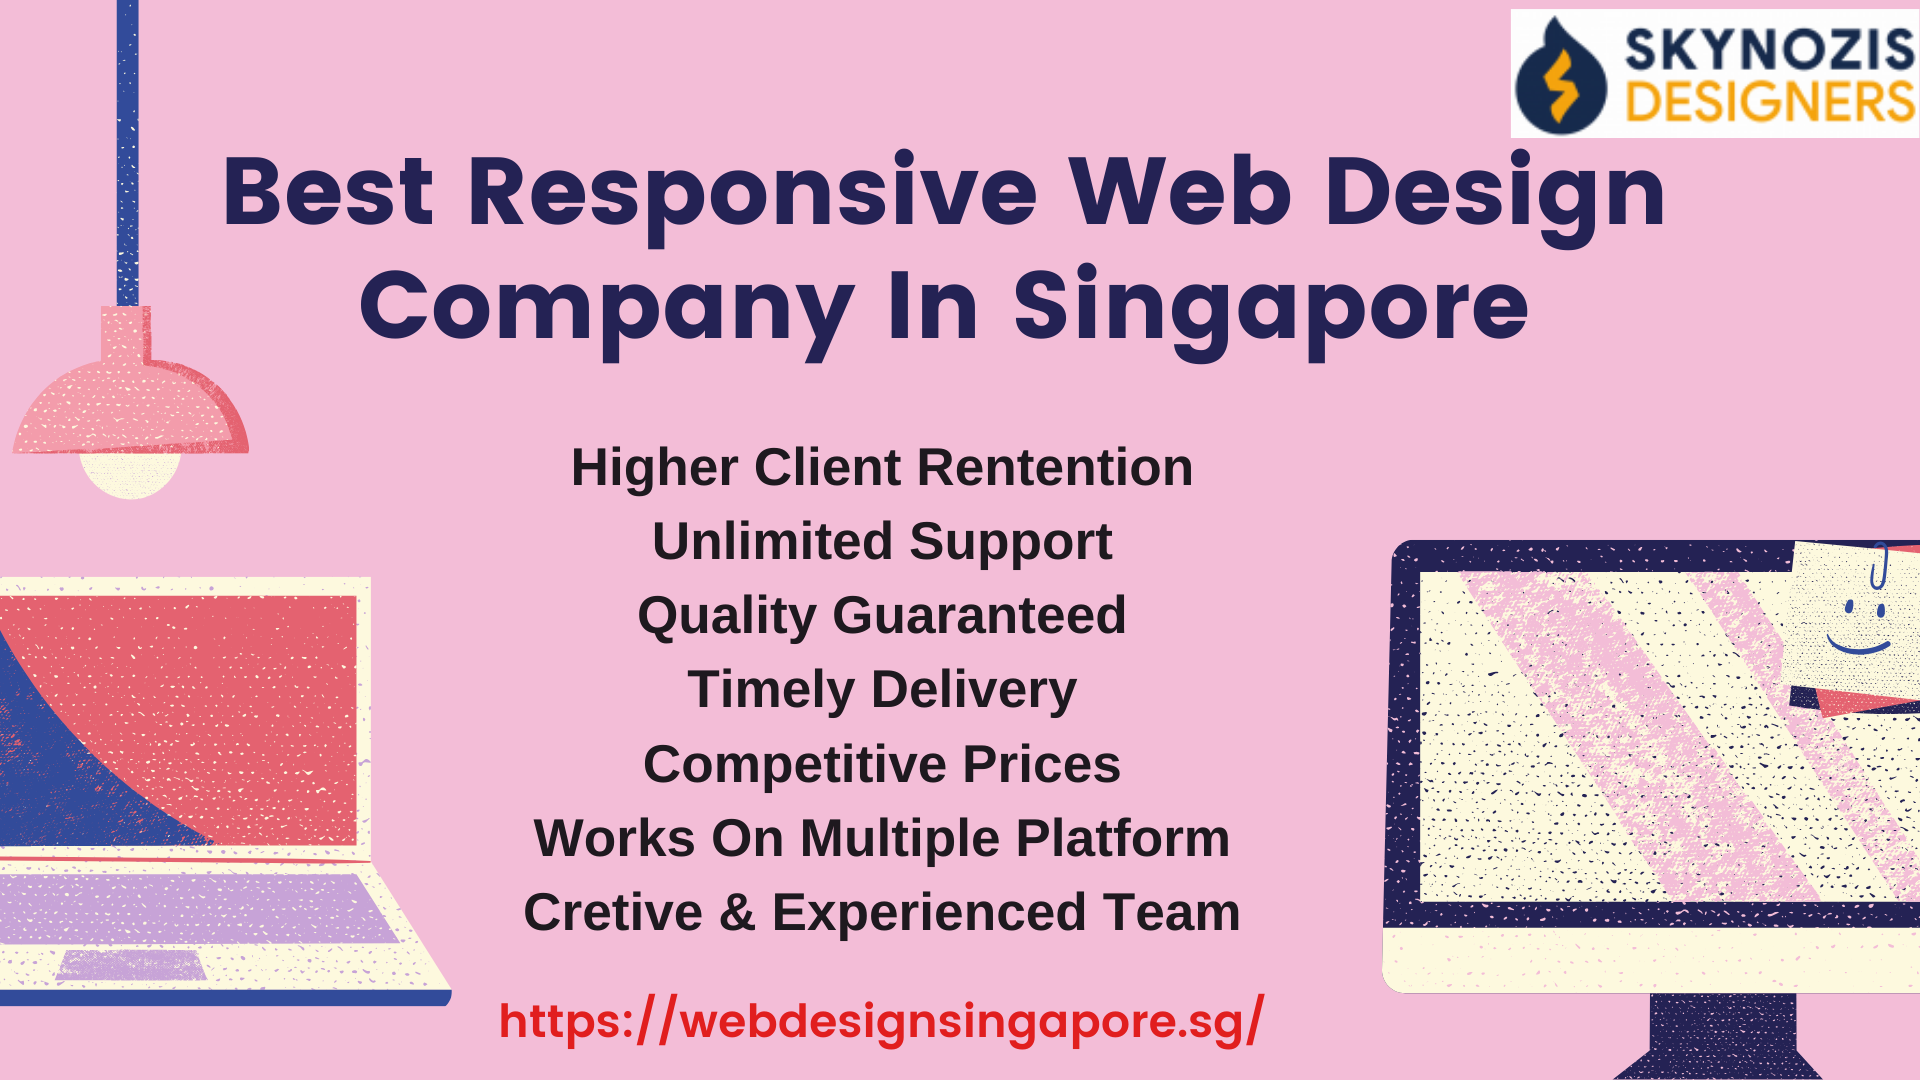 Best Responsive Web Design Company In Singapore - Top & Cheap Website Services - Web Design and Development Company